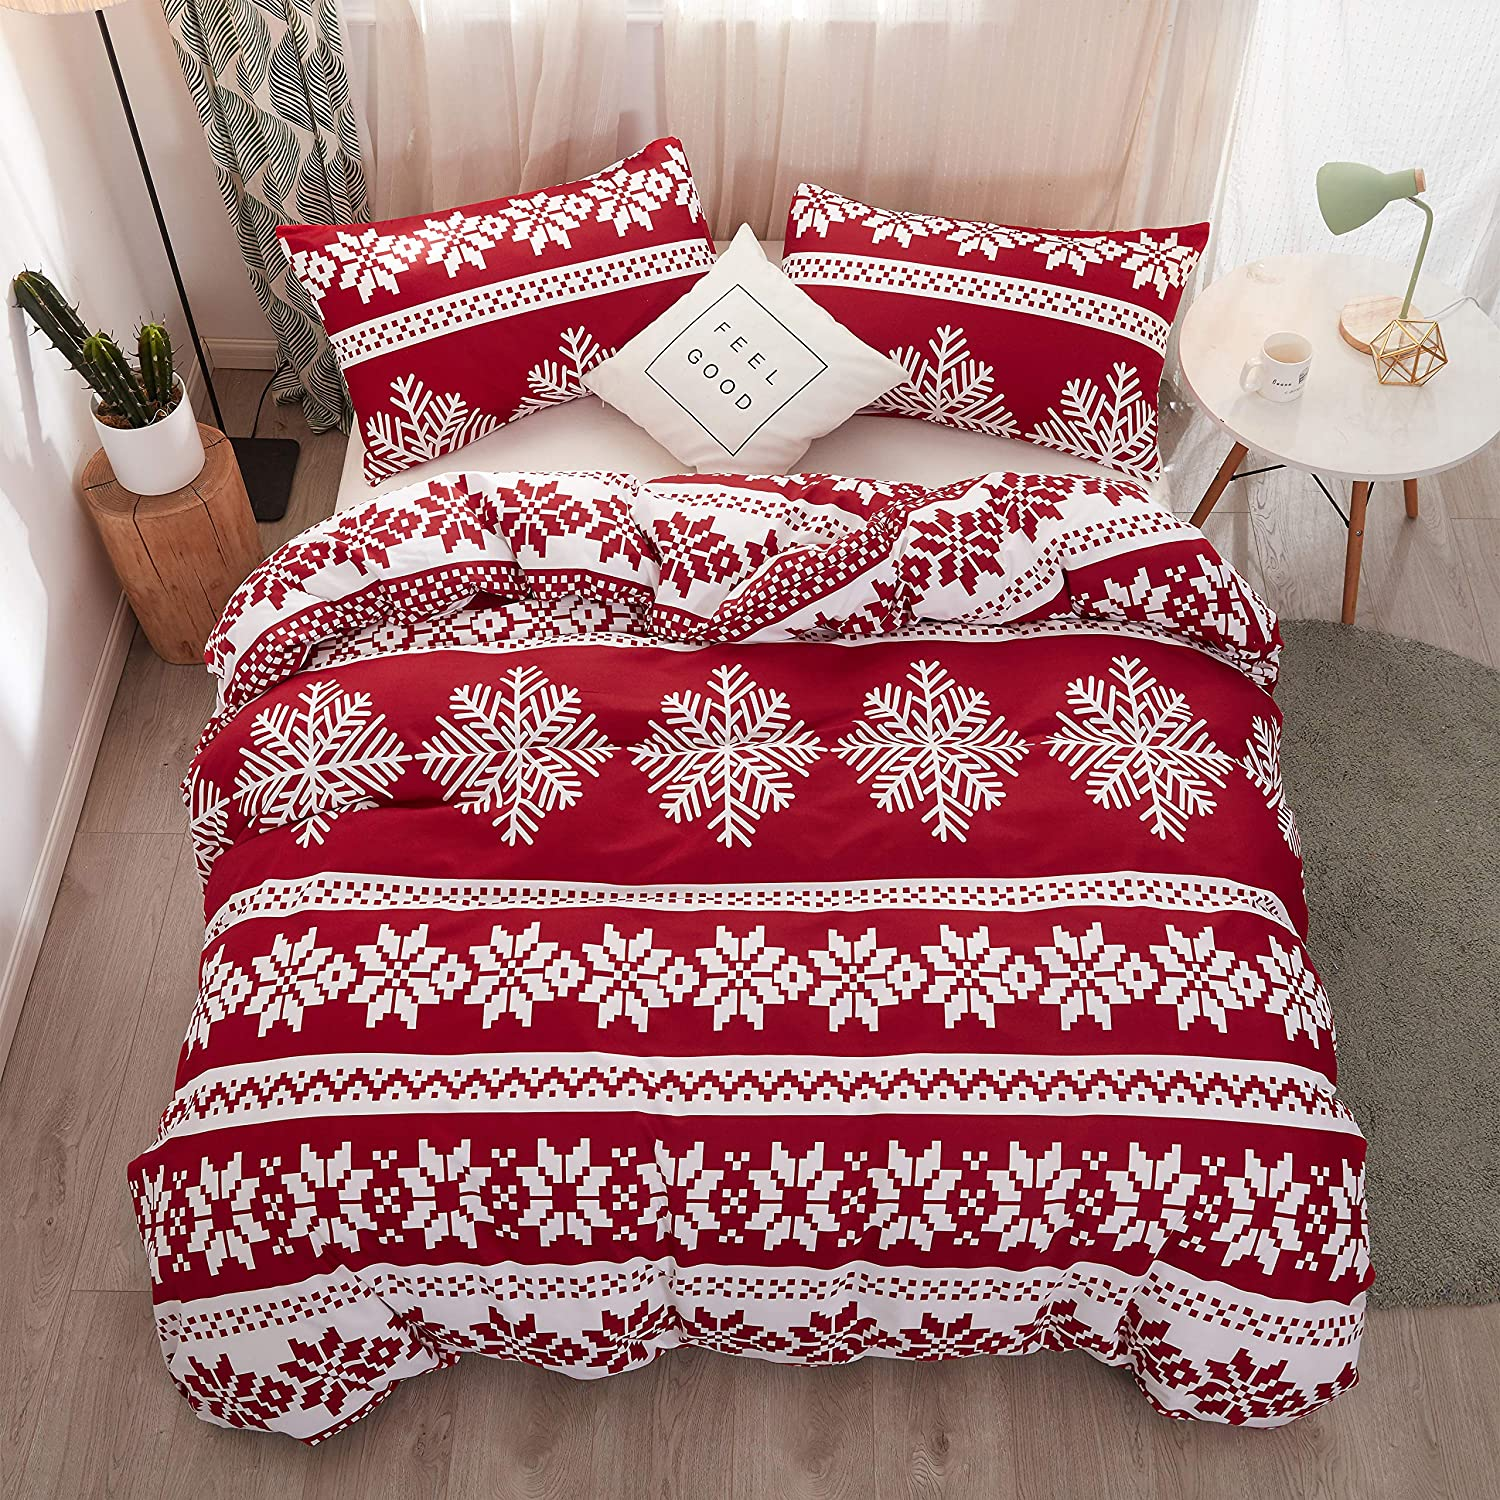 Holiday Bedding Set Comforter Cover(1 Duvet Cover+2 Pillowcases) Red